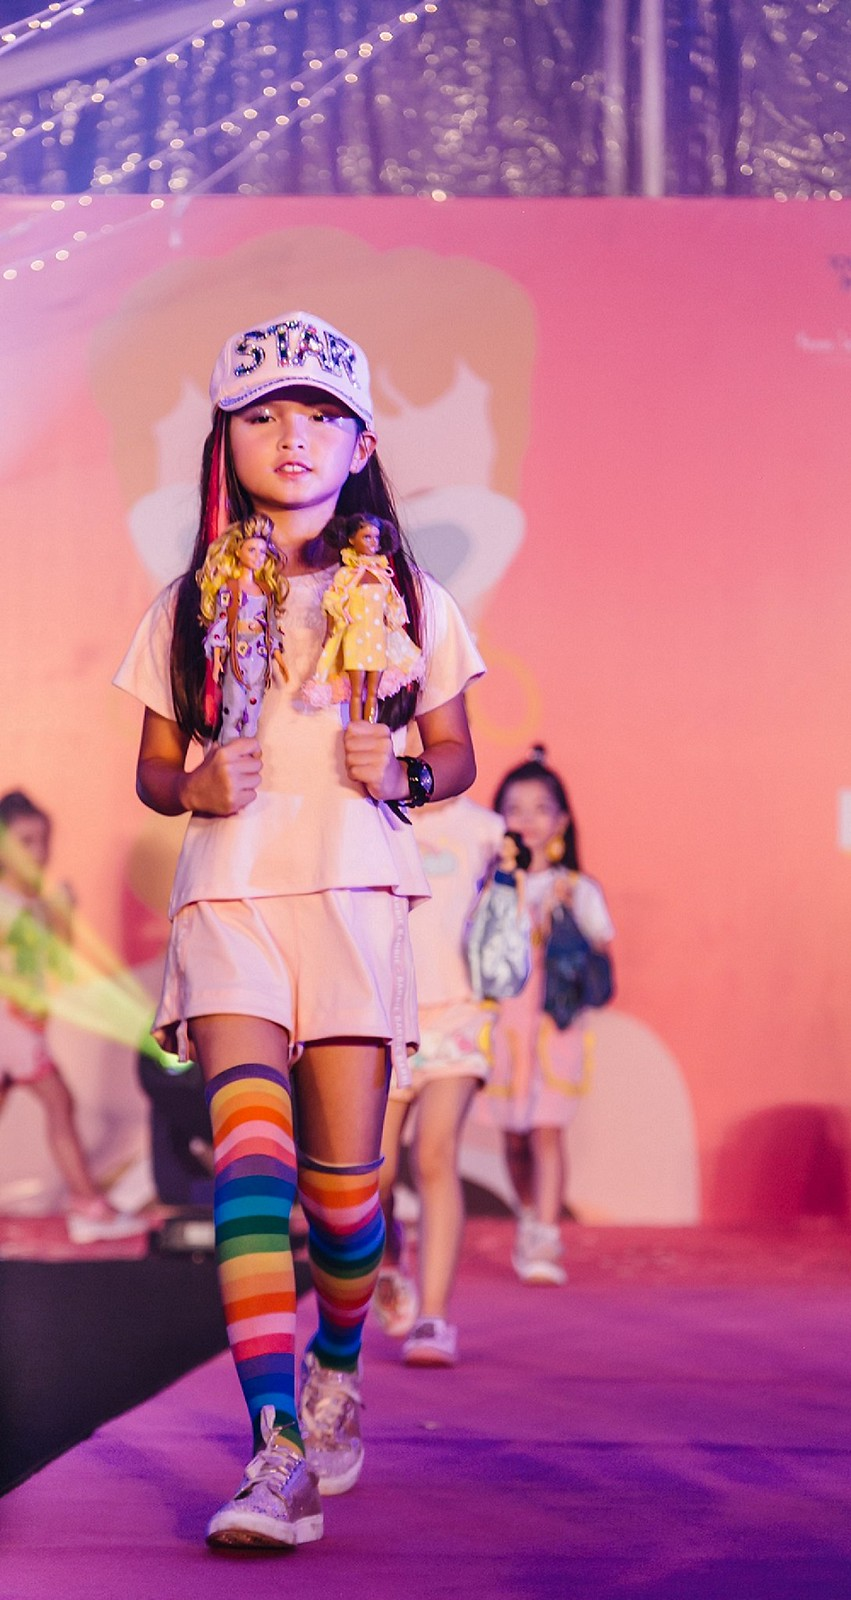 A Junior Supermodel from the Amber Chia Academy showcasing the Custom Styled Barbie Dolls by students of Limkokwing University and the A Cut Above Academy.